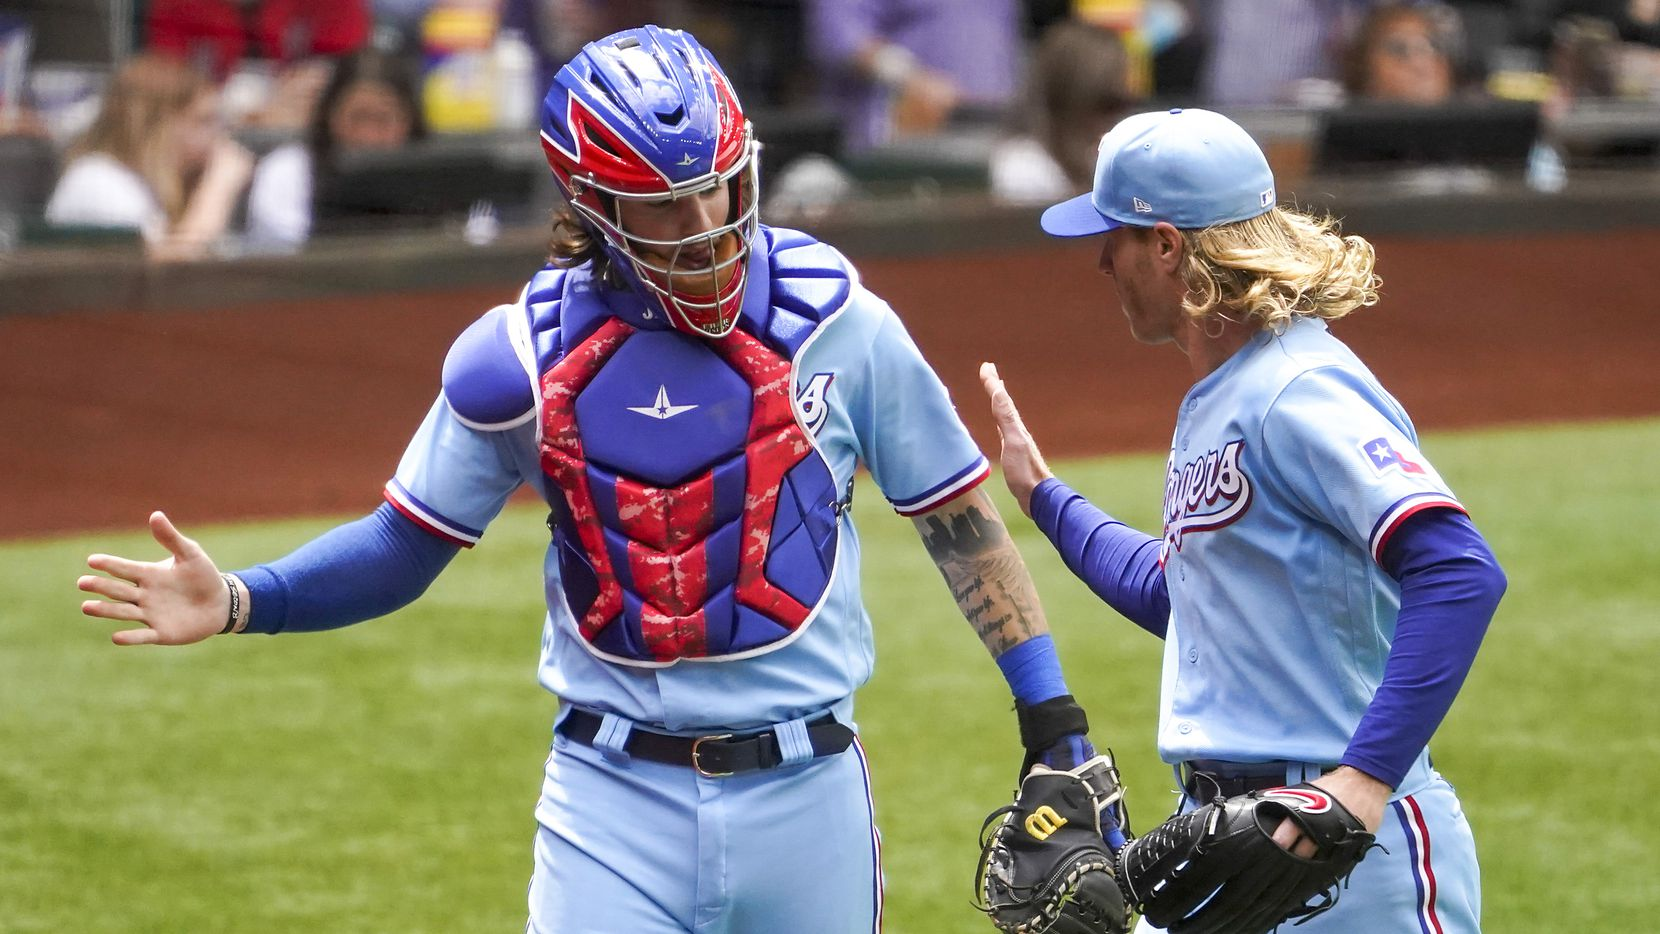 Texas Rangers starting pitcher Mike Foltynewicz celebrates with catcher Jonah Heim after gettting a double play to end the fifth inning against the Boston Red Soxat Globe Life Field on Sunday, May 2, 2021.